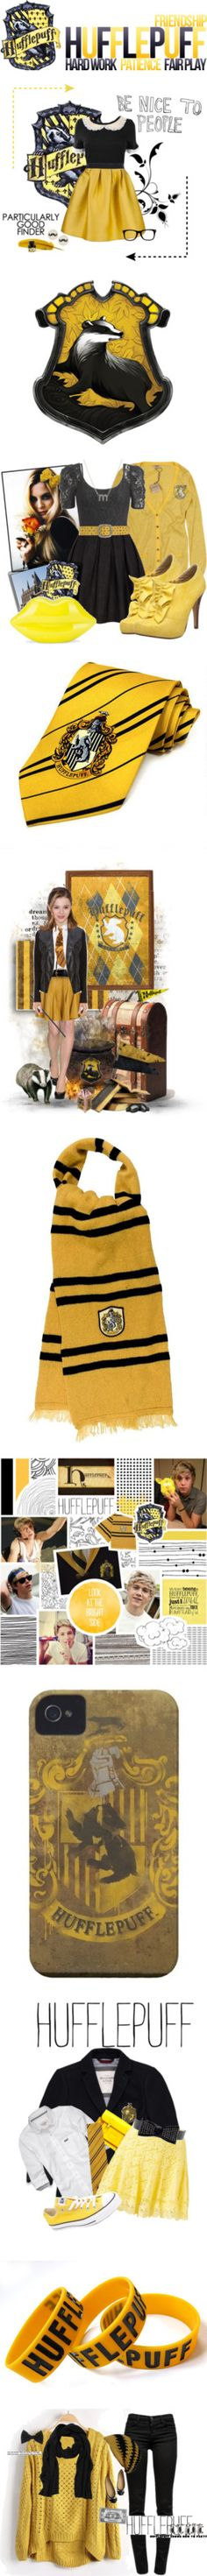 """""""Hufflepuff Pride"""" by k-strautz ❤ liked on Polyvore"""